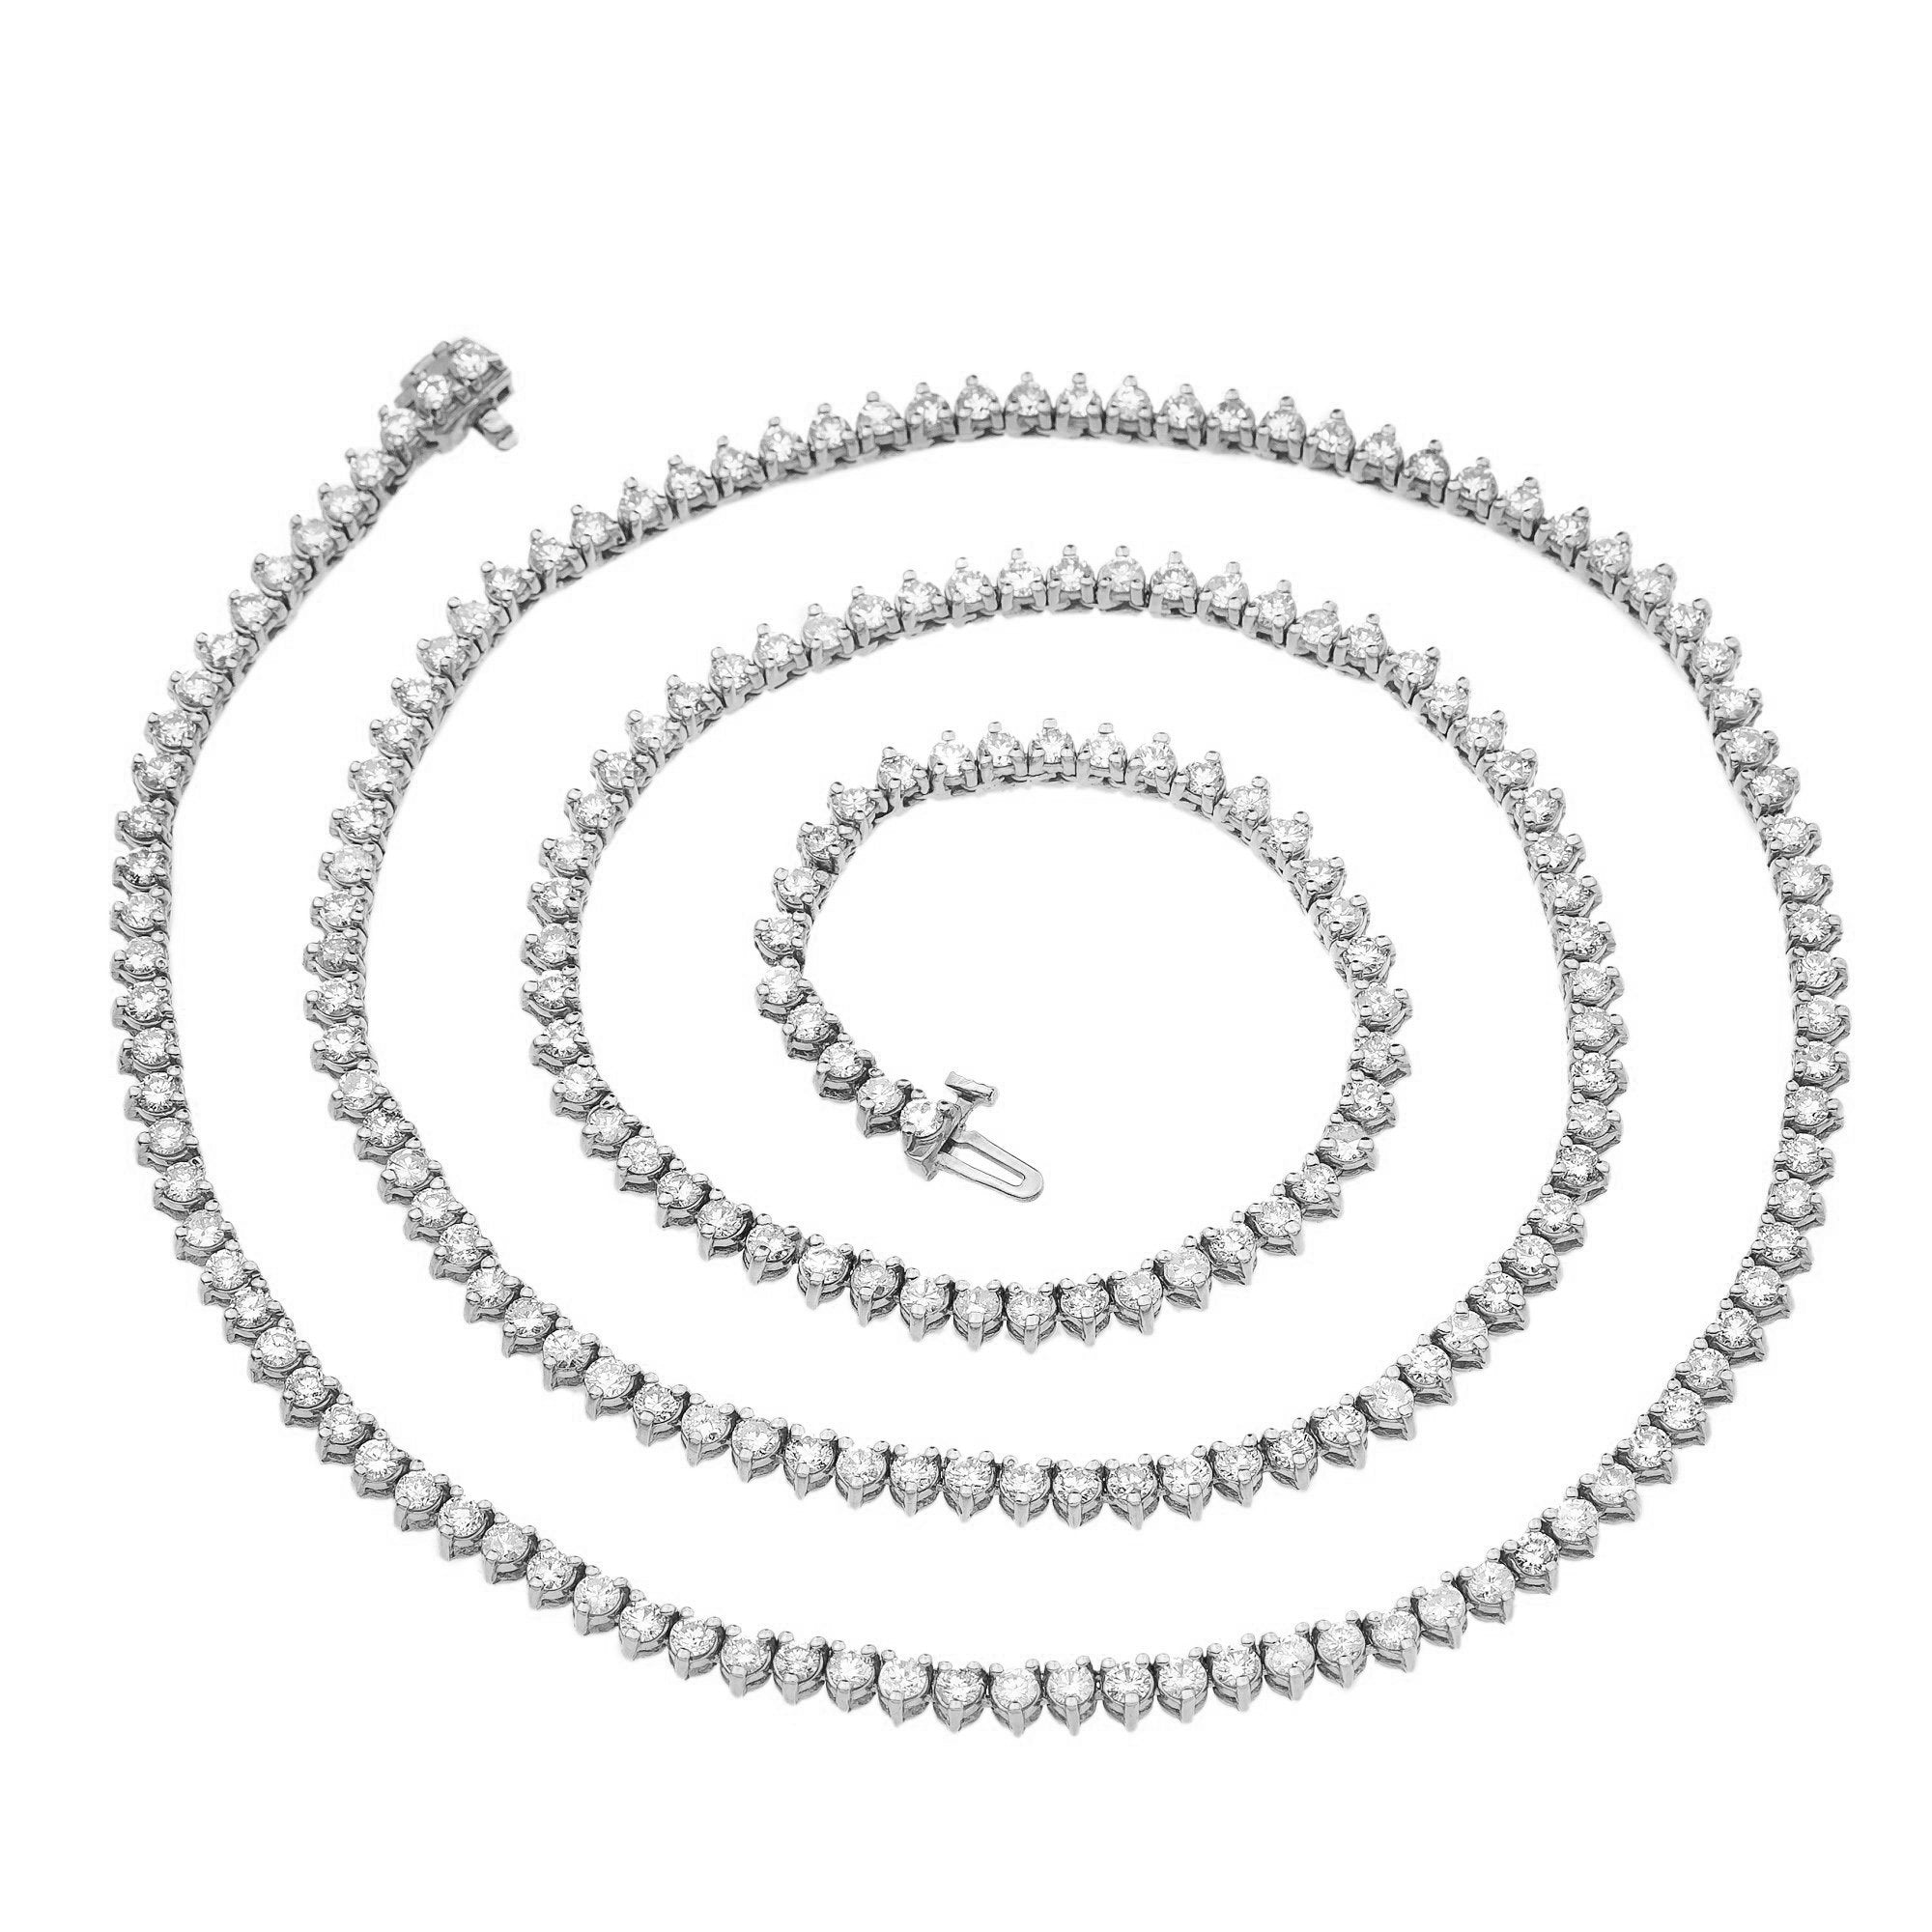 14K White Gold Unisex Tennis Chain with Diamonds